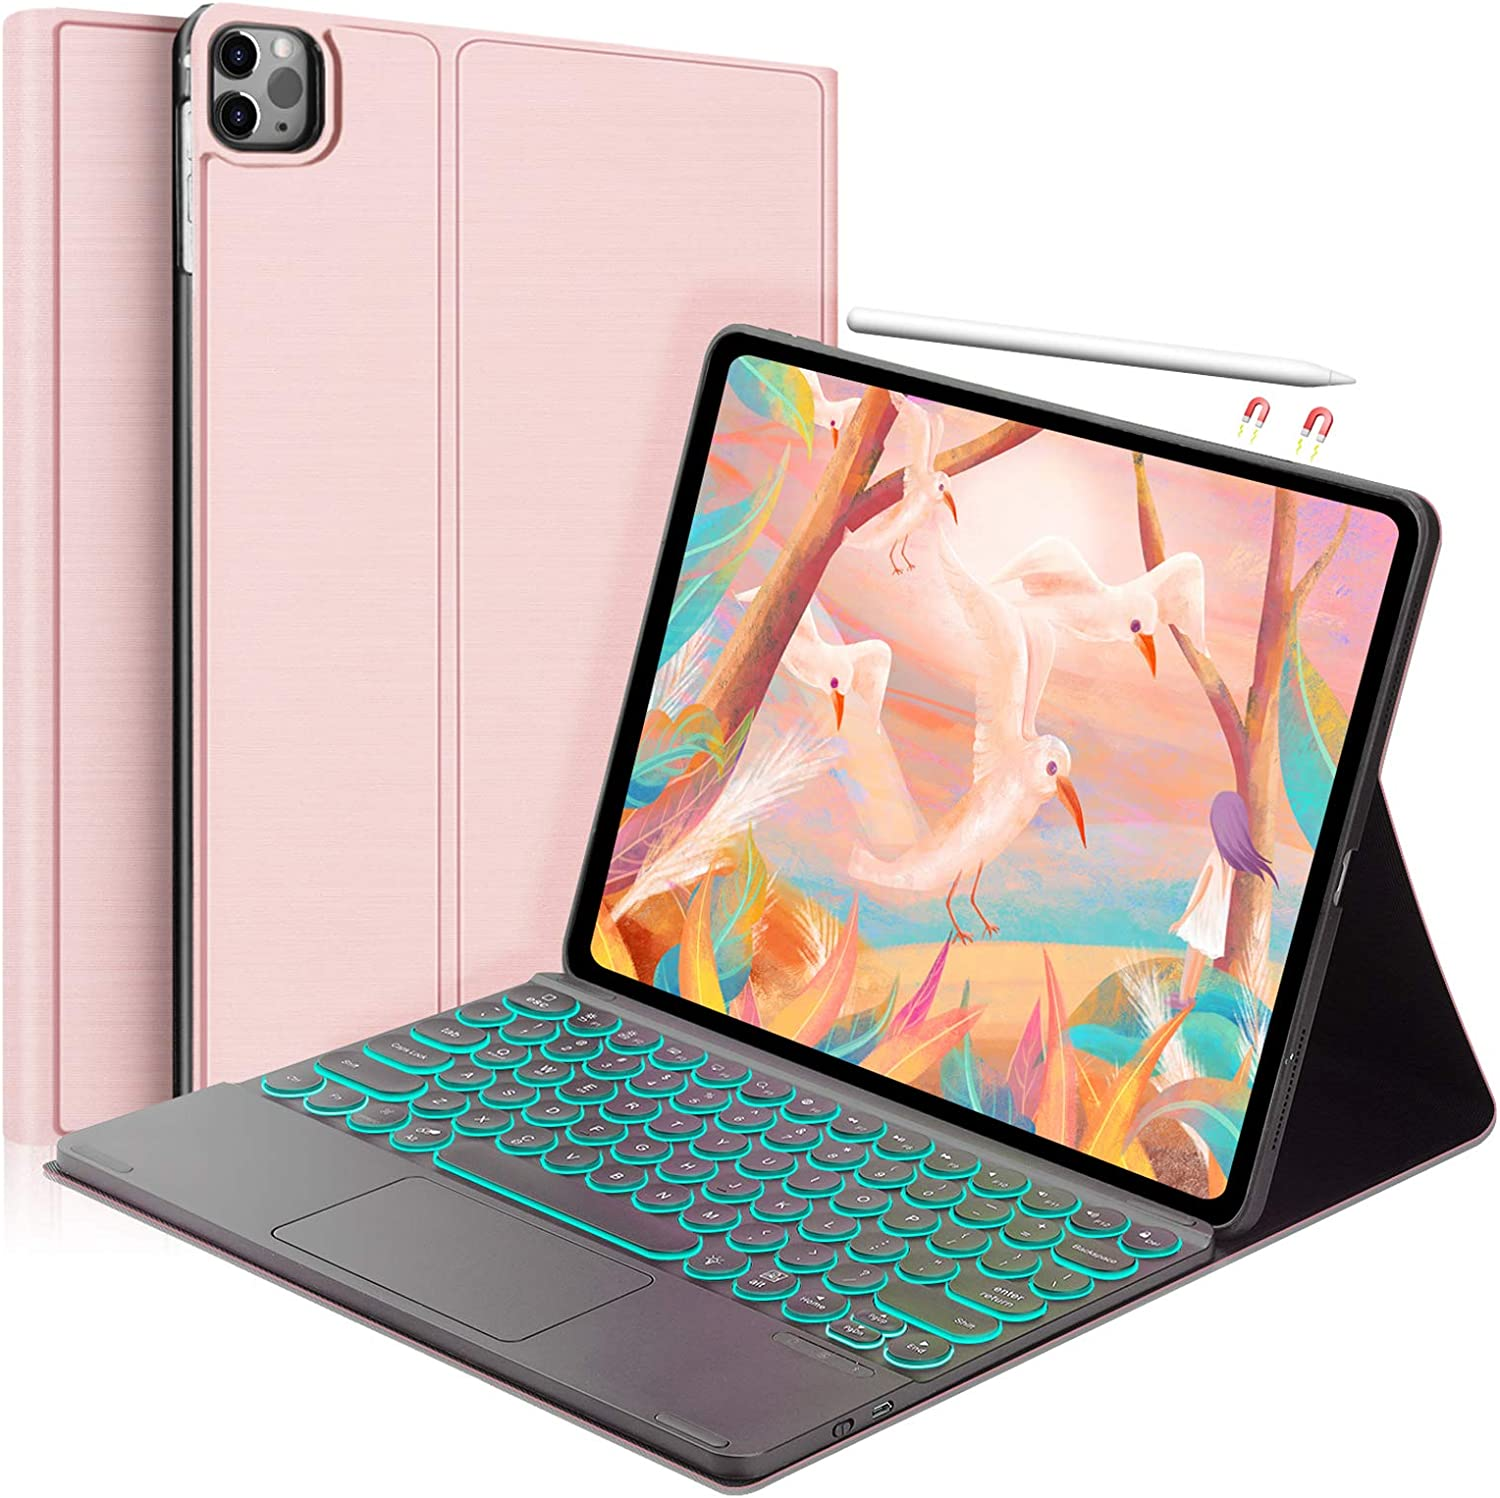 New Keyboard case for iPad Pro 12.9 4th Gen 2020/3rd Gen 2018 [Support Apple Pencil Charging]-Detachable-7 Color Backlit Touchpad Keyboard-Ultra Slim Folio Protective Cover -Rose Gold